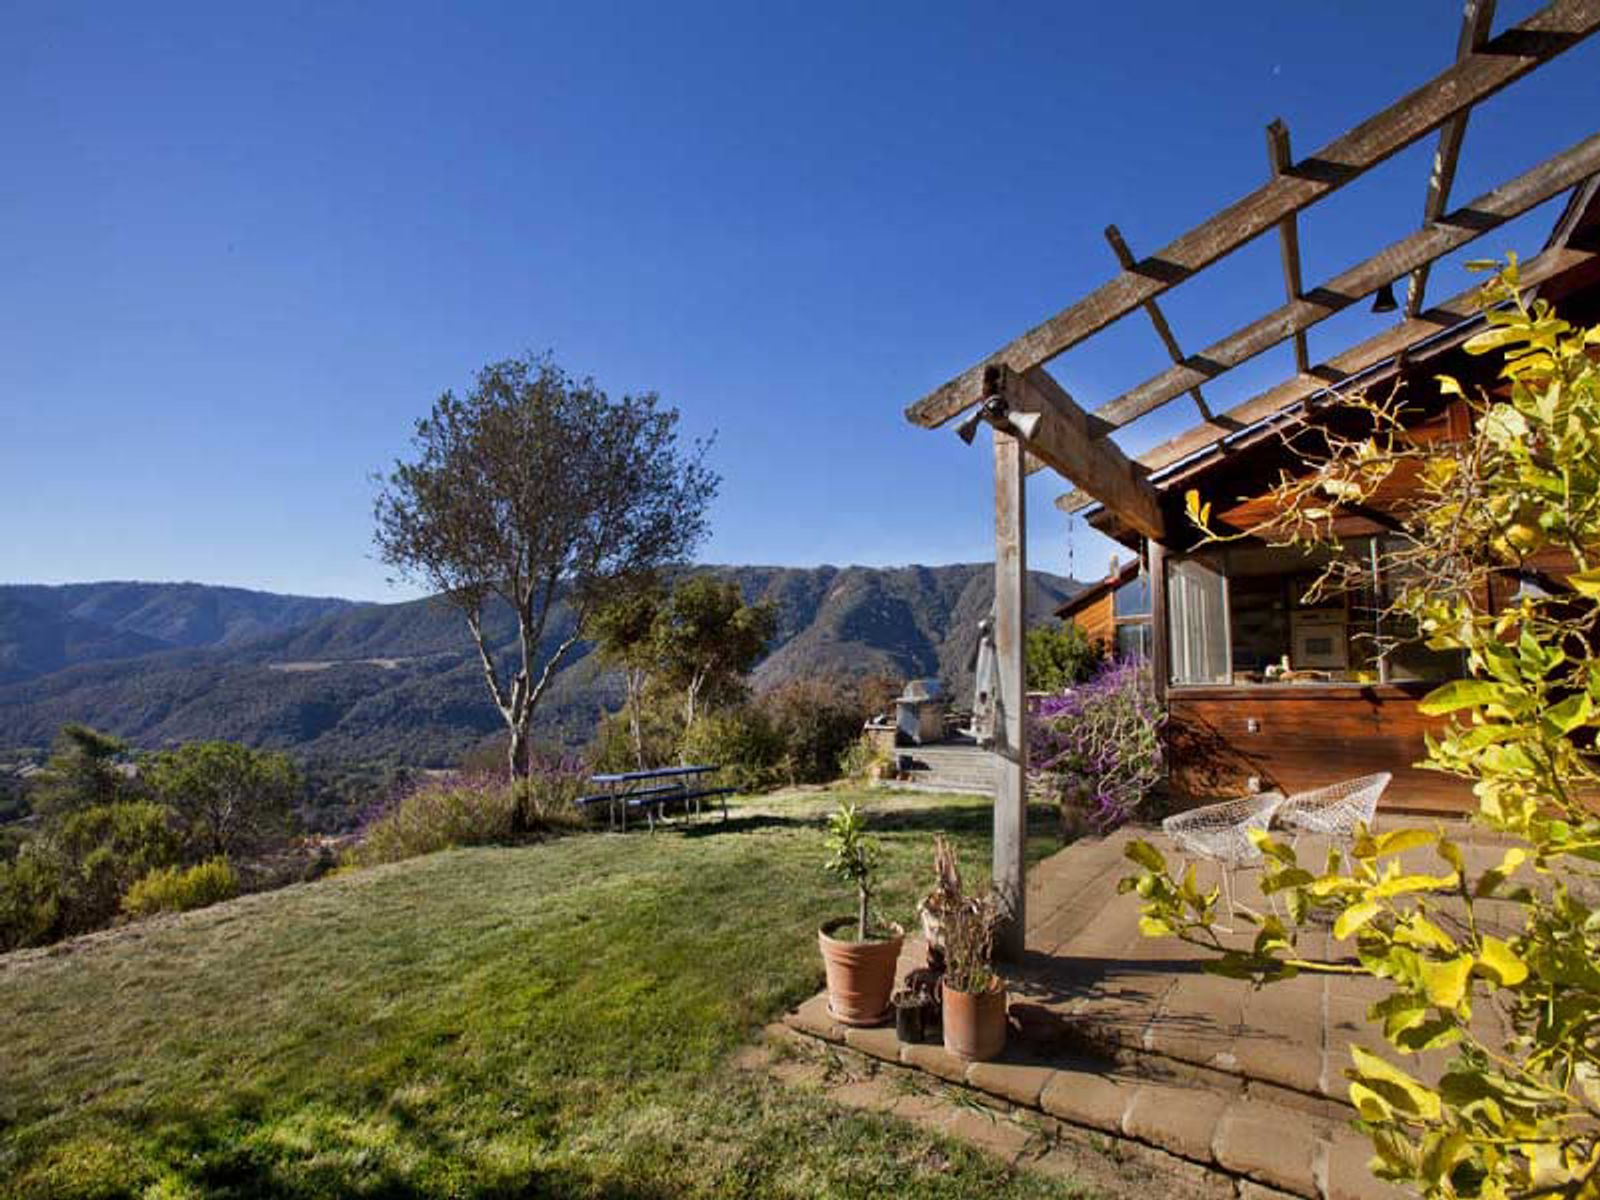 Carmel Valley Private Home with Views, Carmel Valley CA Single Family Home - Monterey Real Estate